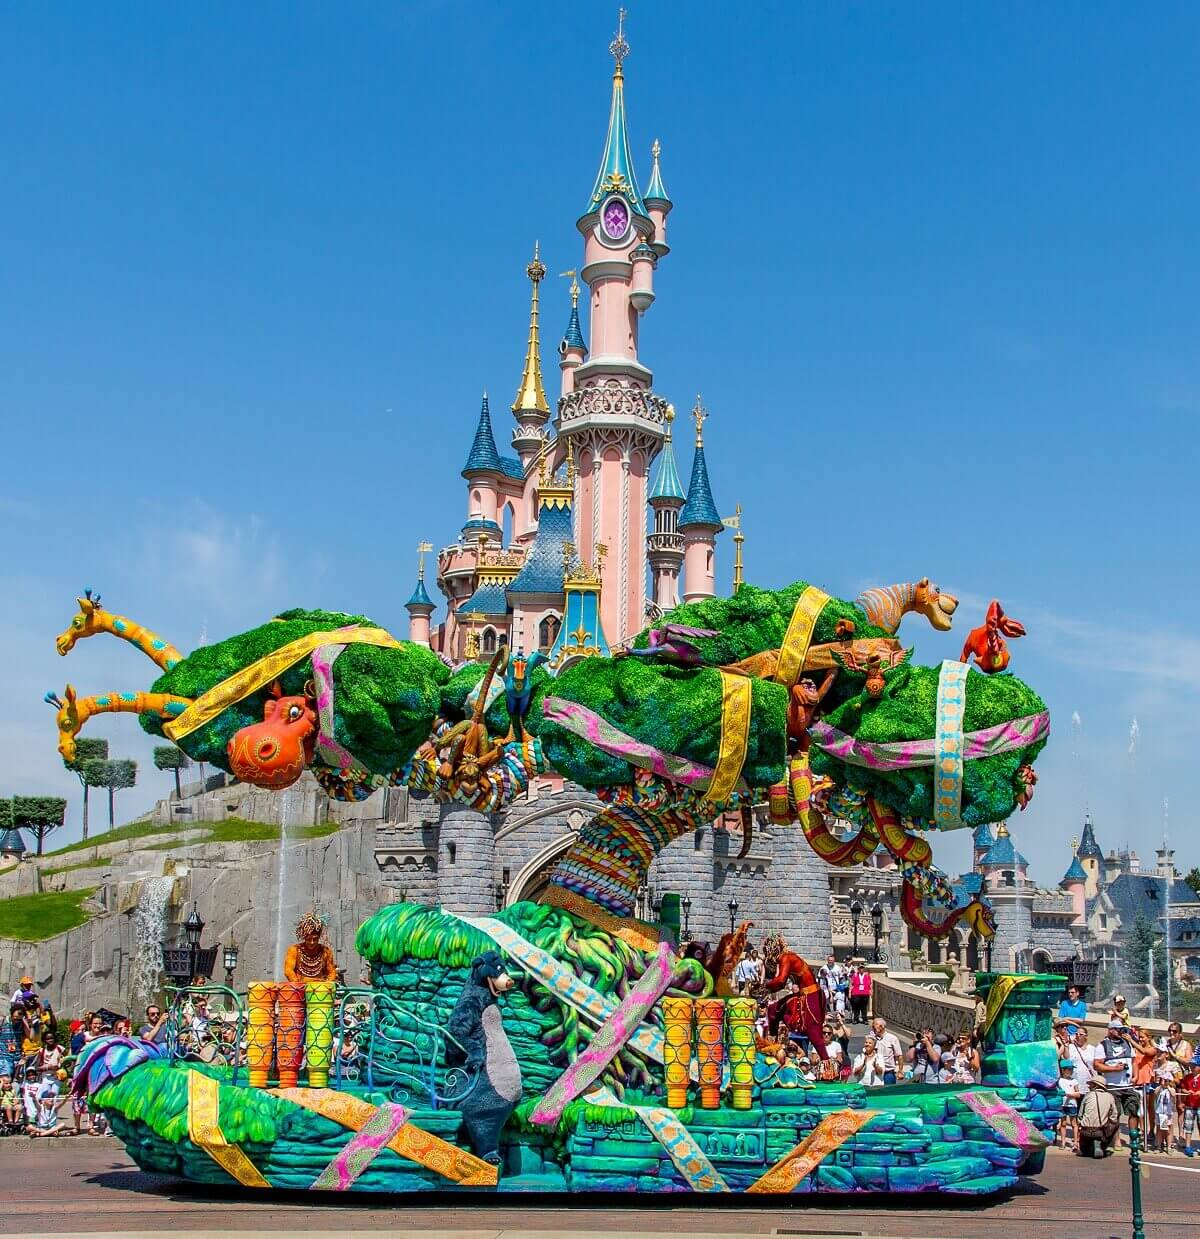 Paradenwagen des Lion King and Jungel Festivals vor dem Schloss in Disneyland Paris